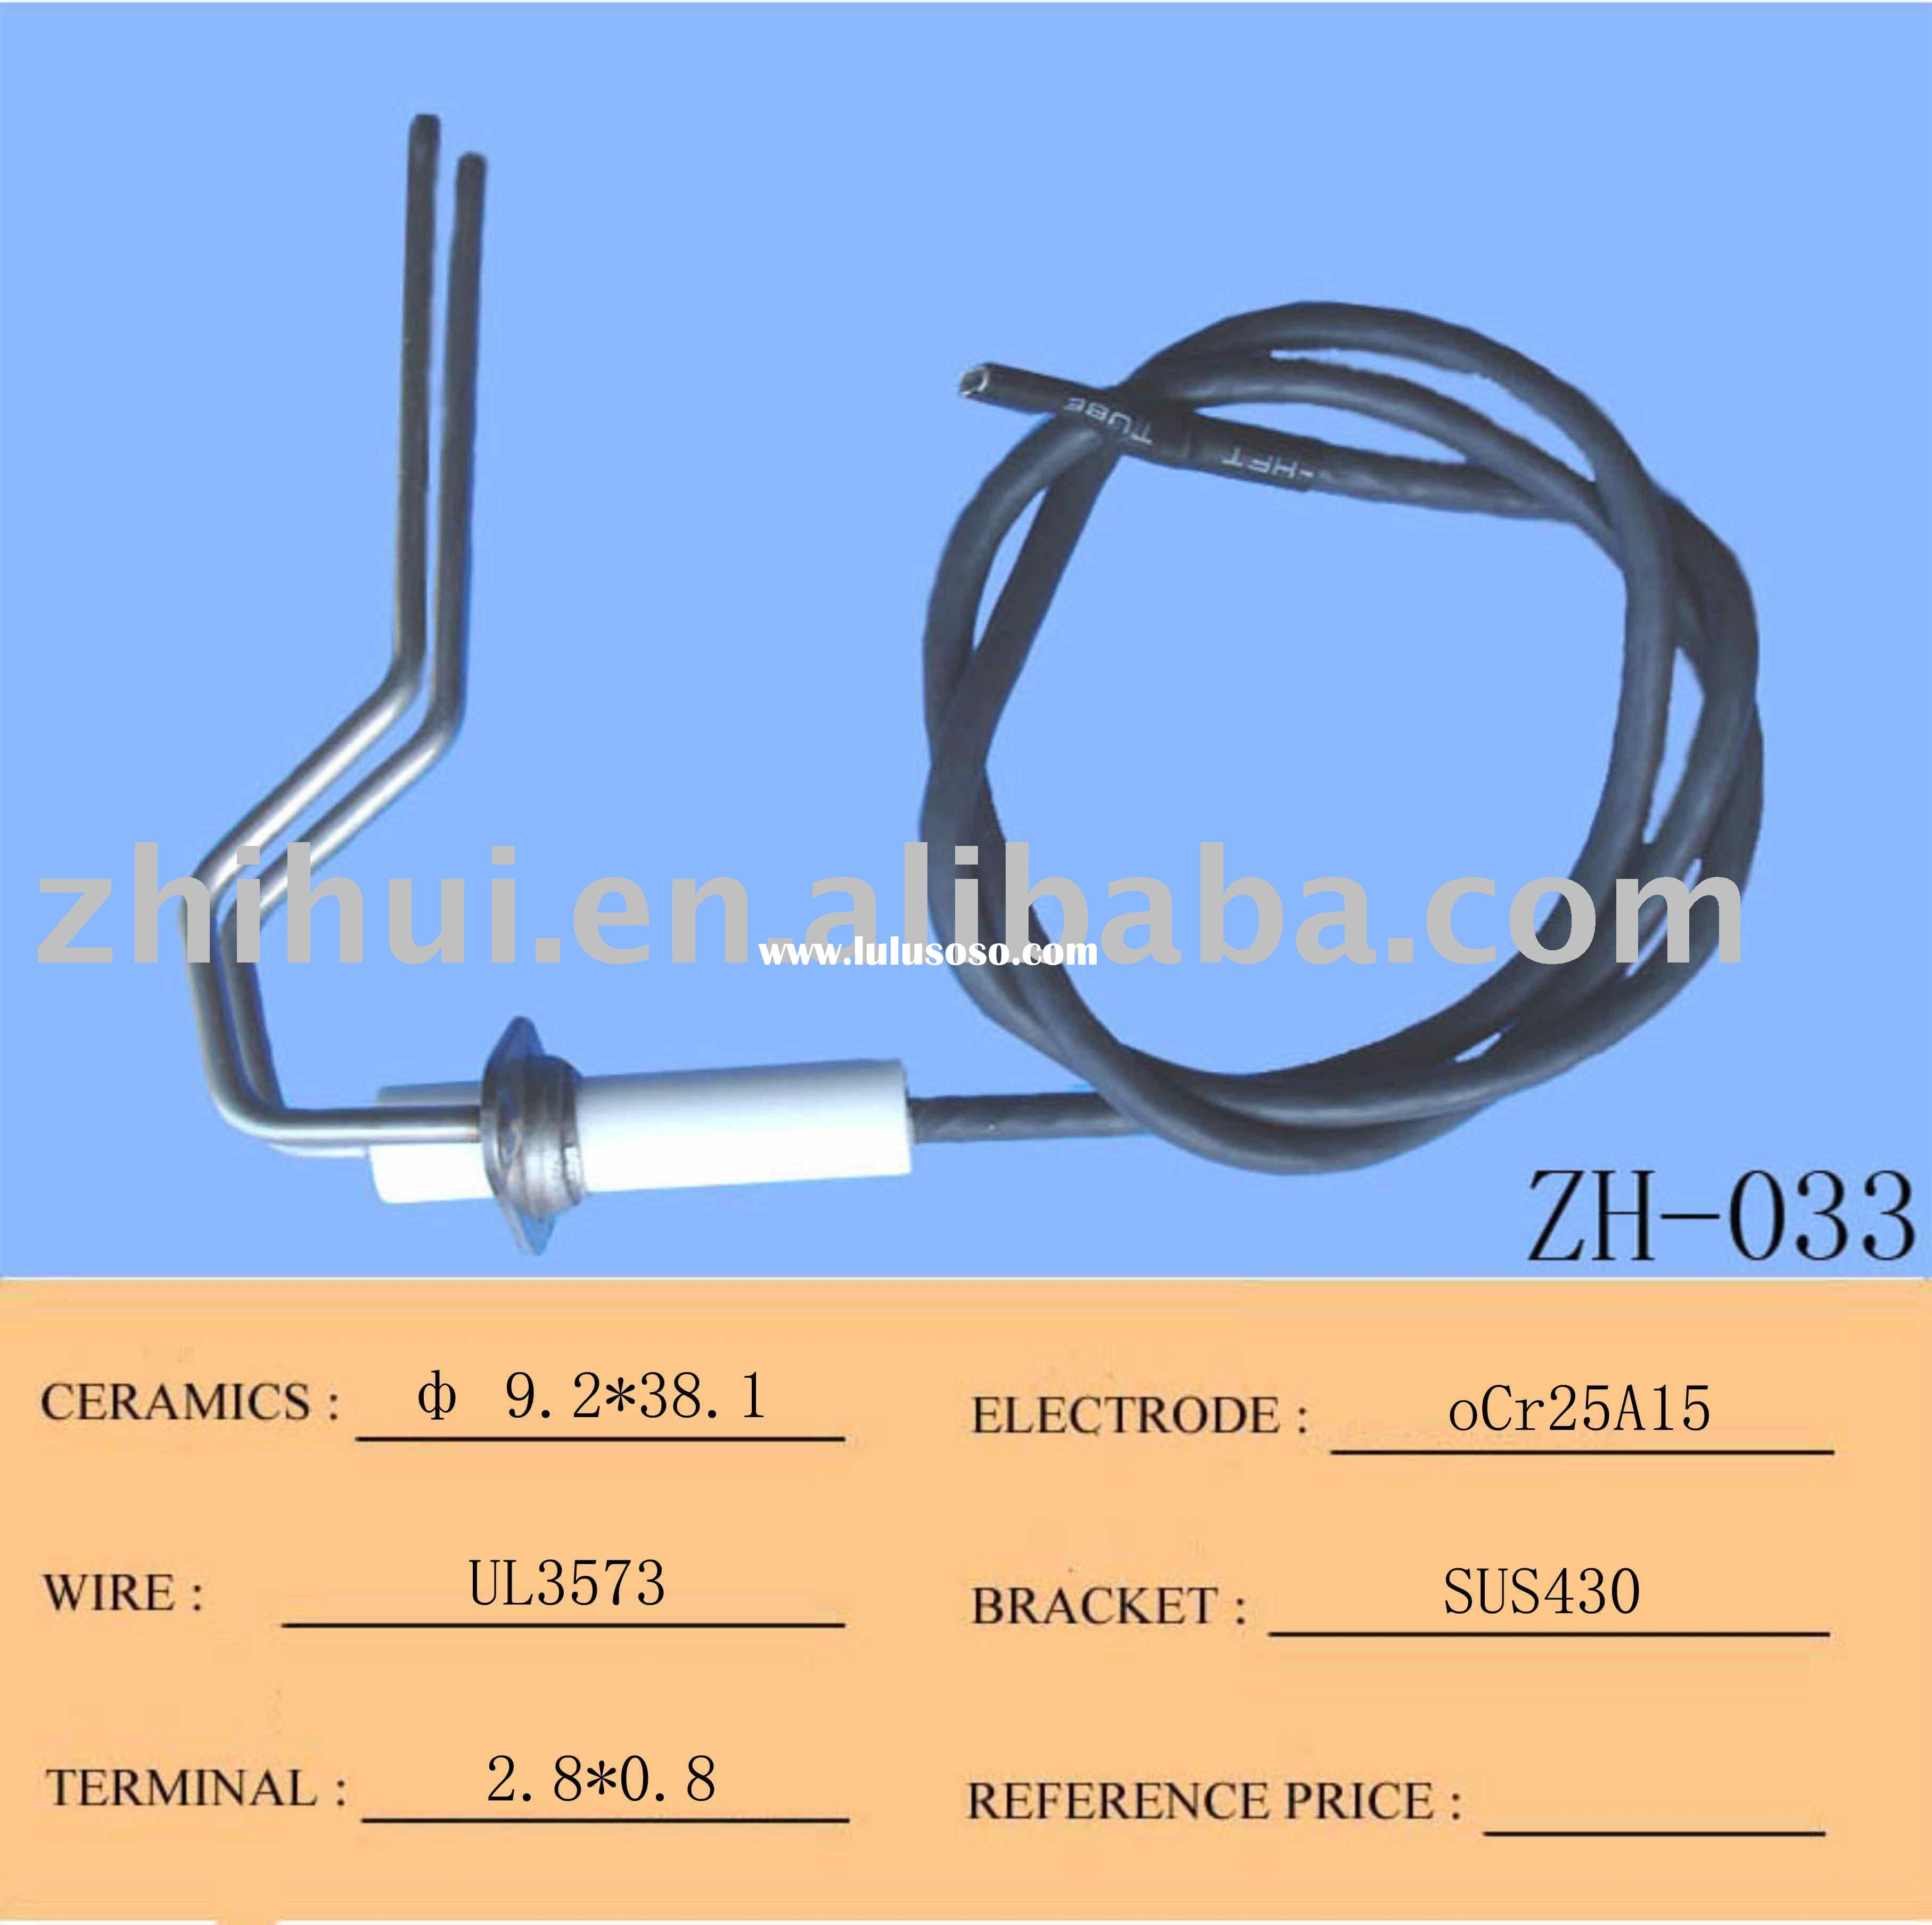 Gas Stove Heater Manufacturers In Terminal Wiring Kit Lulusosocom Zh 033a Flame Sensor Used For Boiler And Water